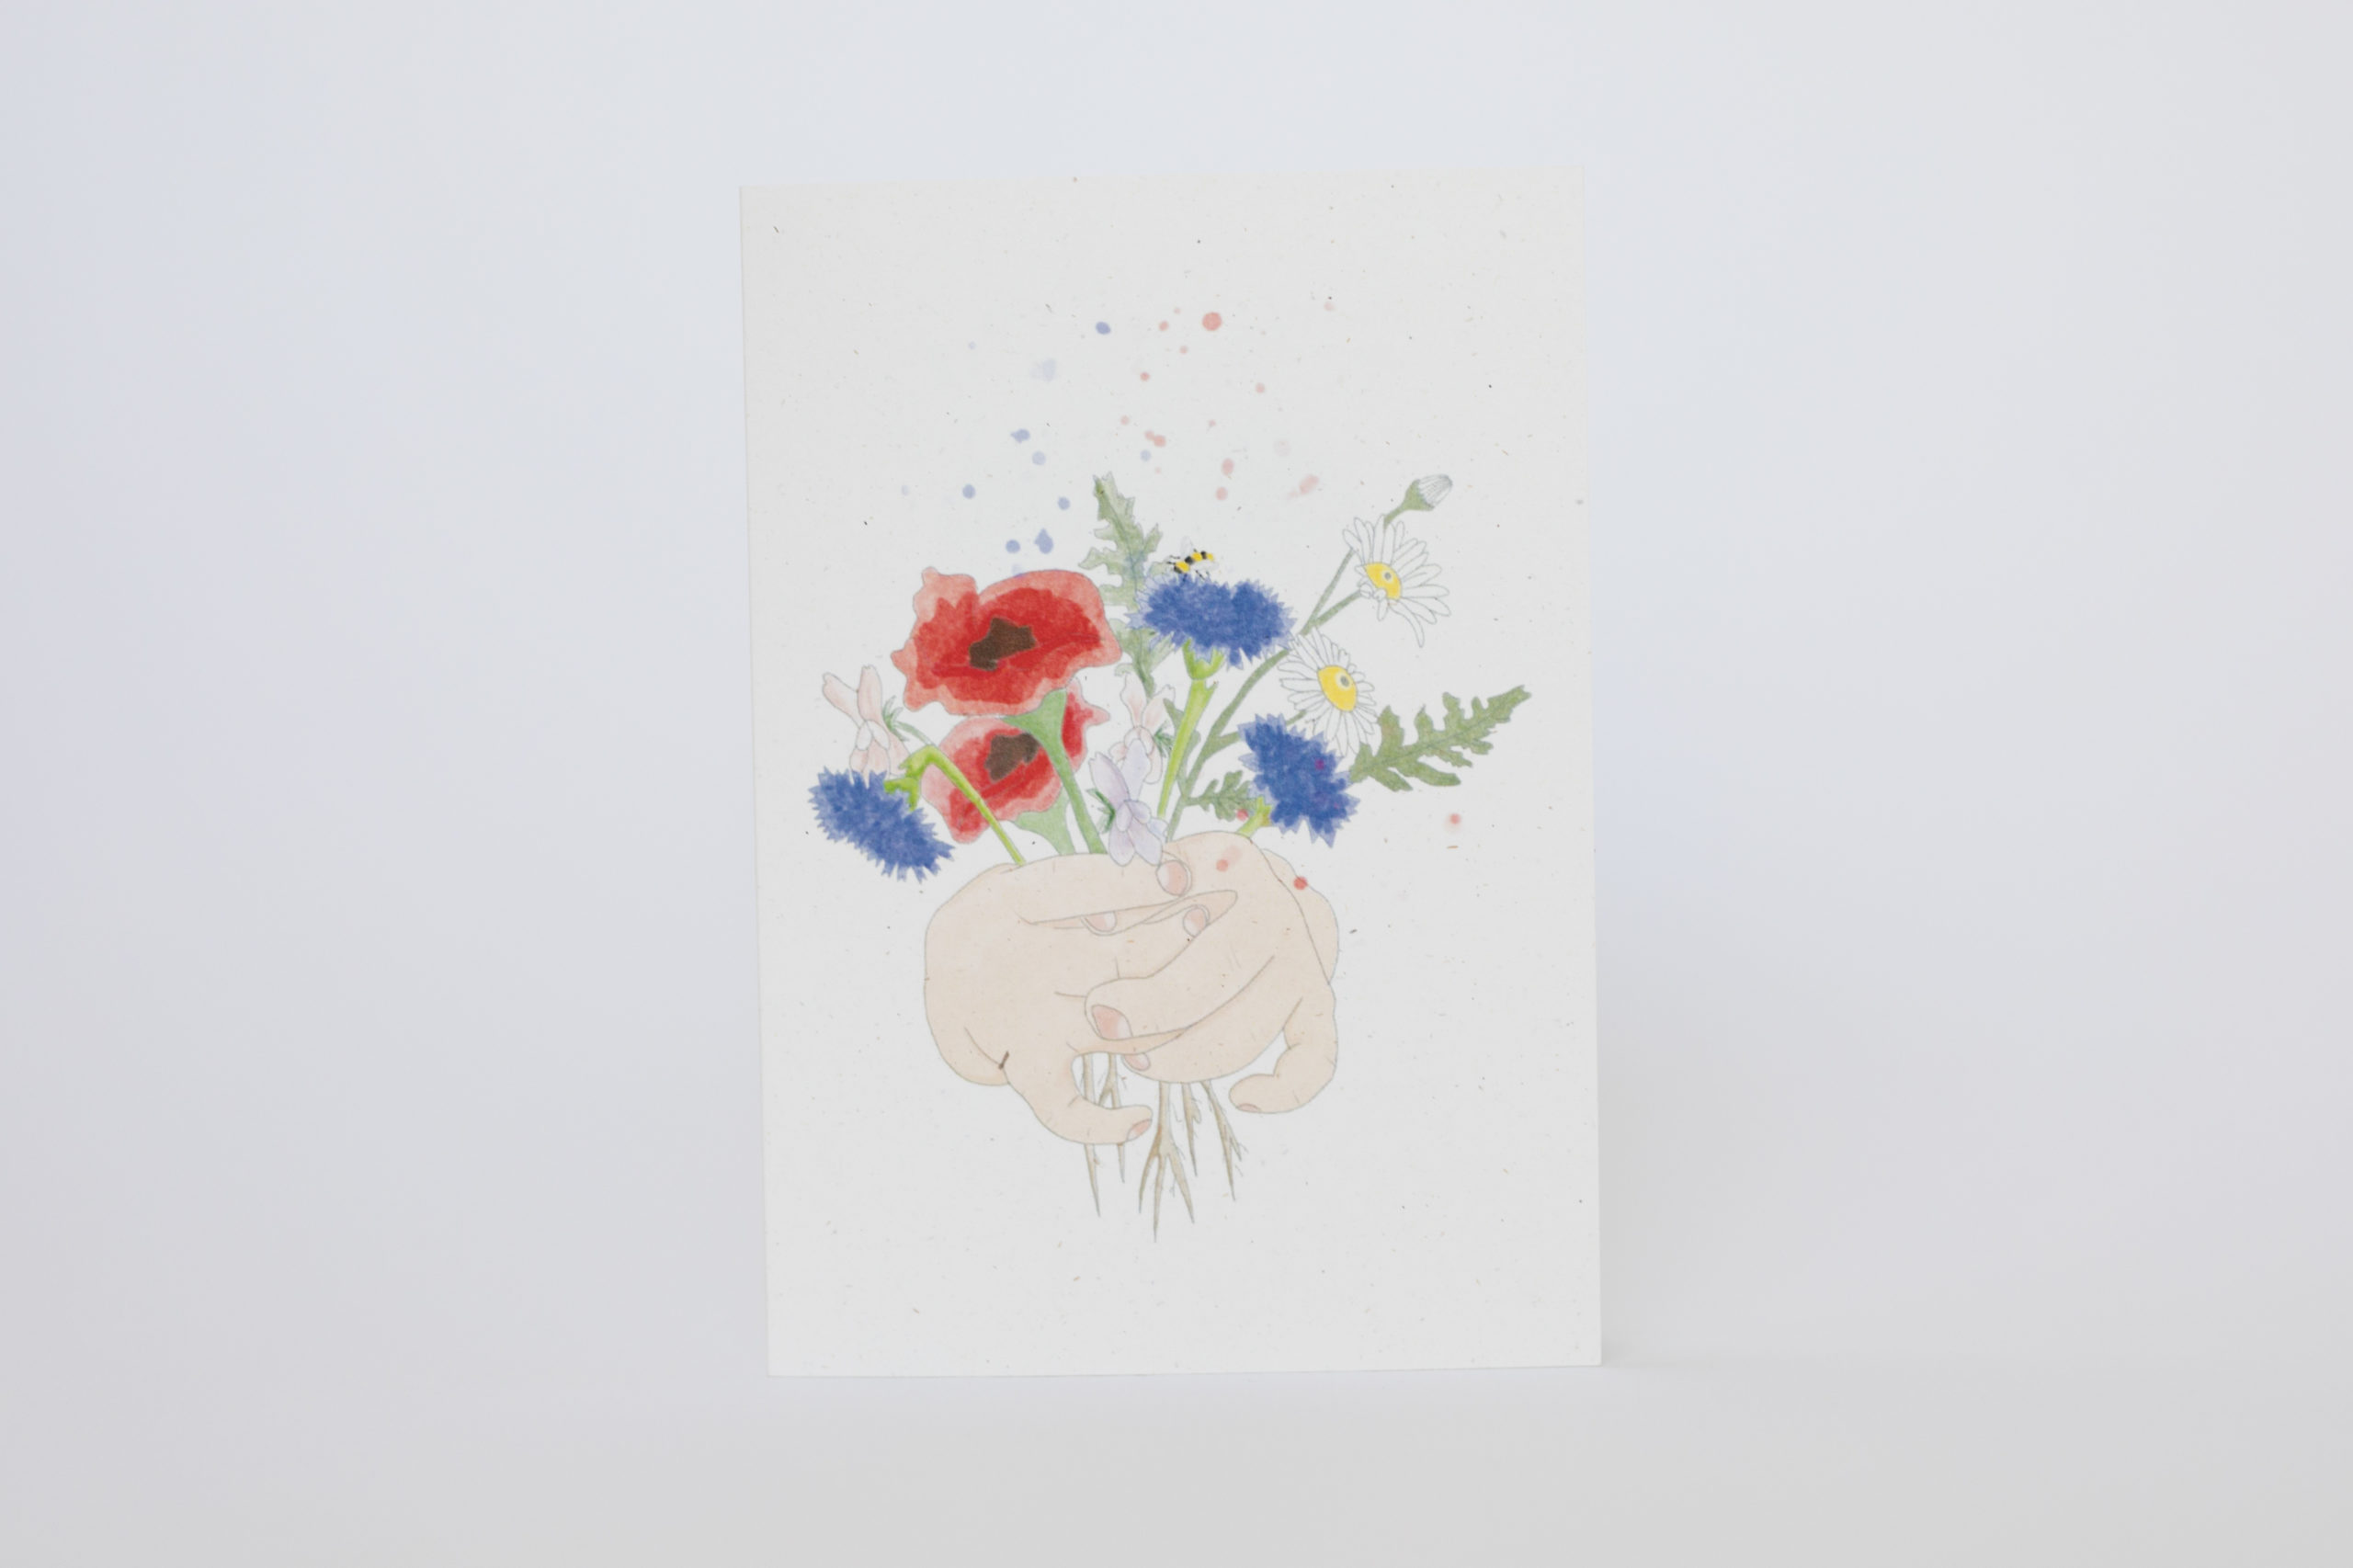 Ruby – Giving Seeds of Love seeded heart and card via @chooicenz